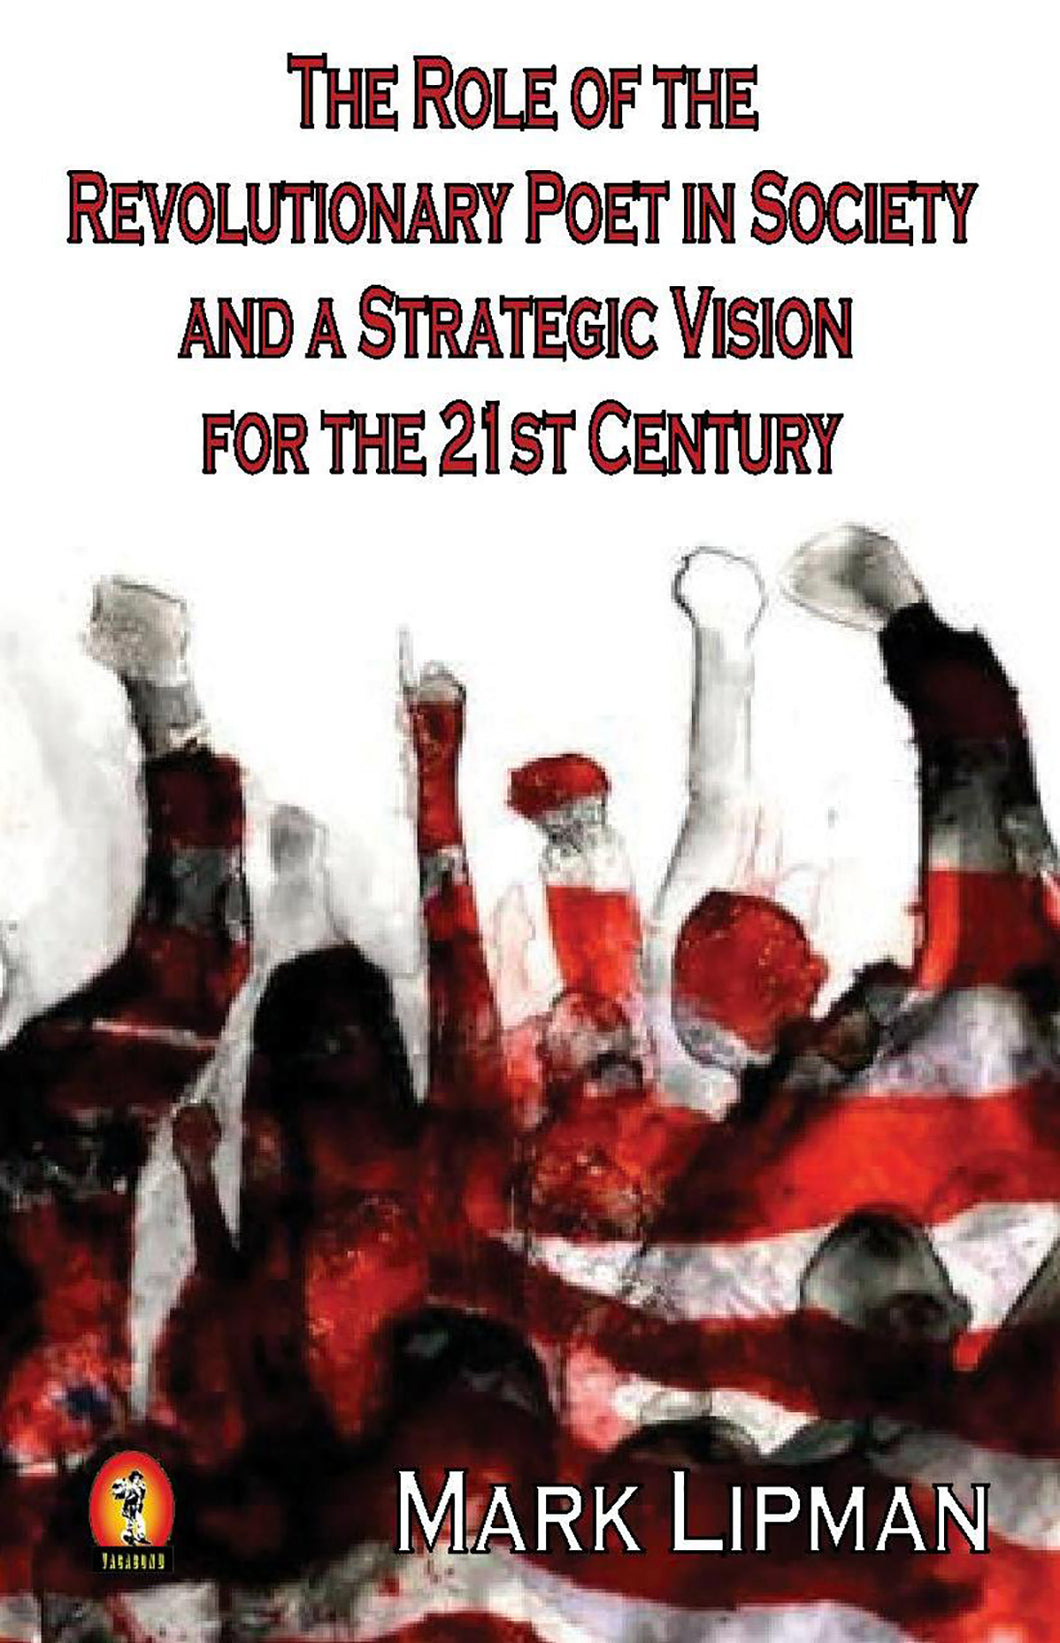 Lipman, Mark: The Role of the Revolutionary Poet in Society and a Strategic Vision for the 21st Century